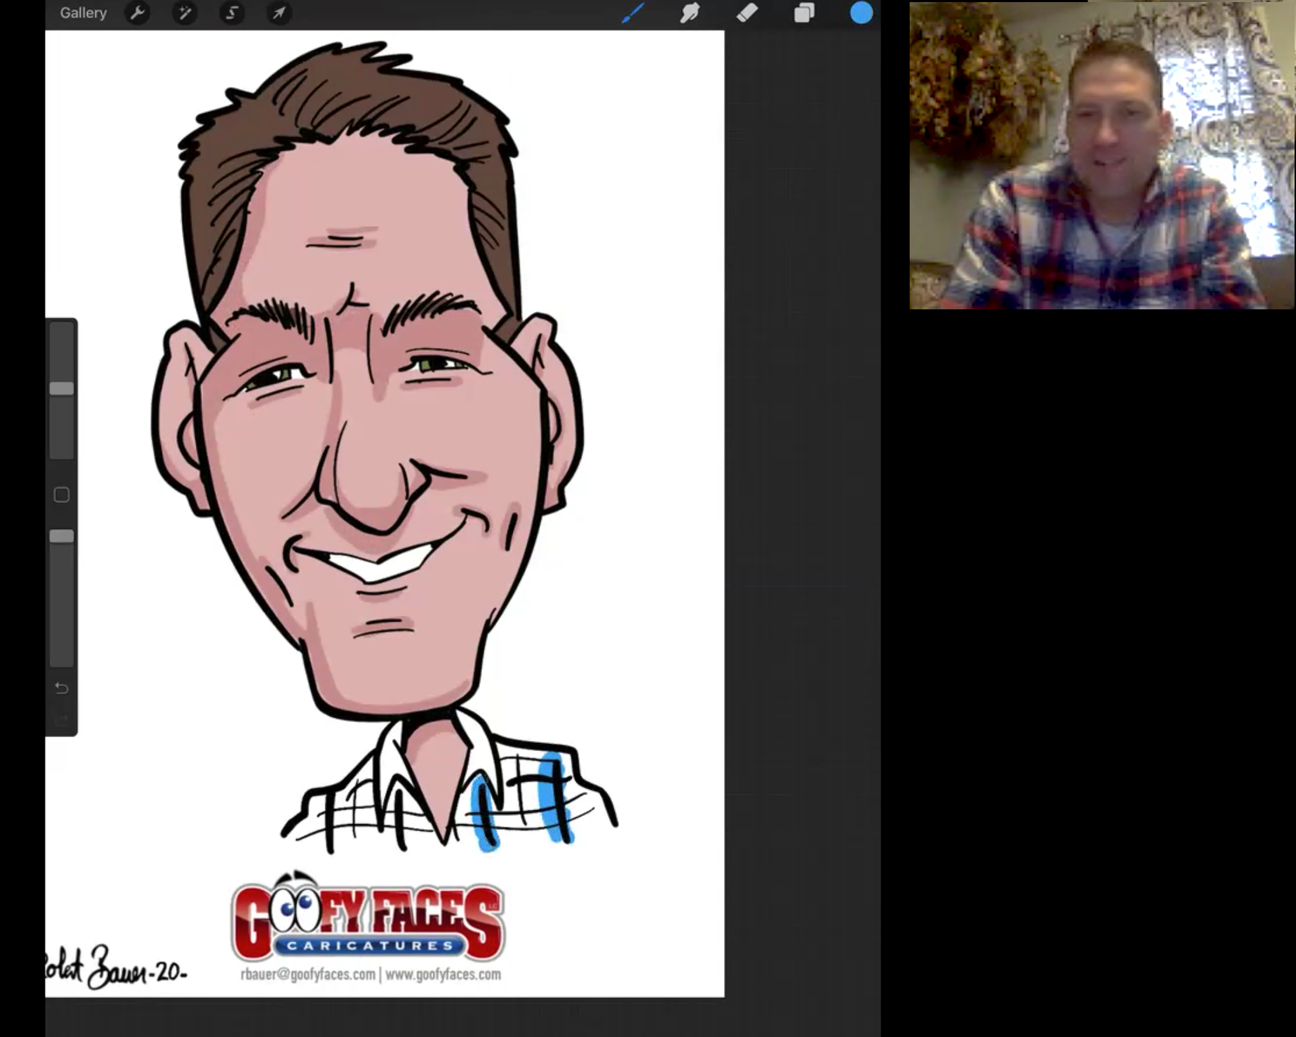 Full Color Caricature Artist Will Create Custom Caricature For Your Face